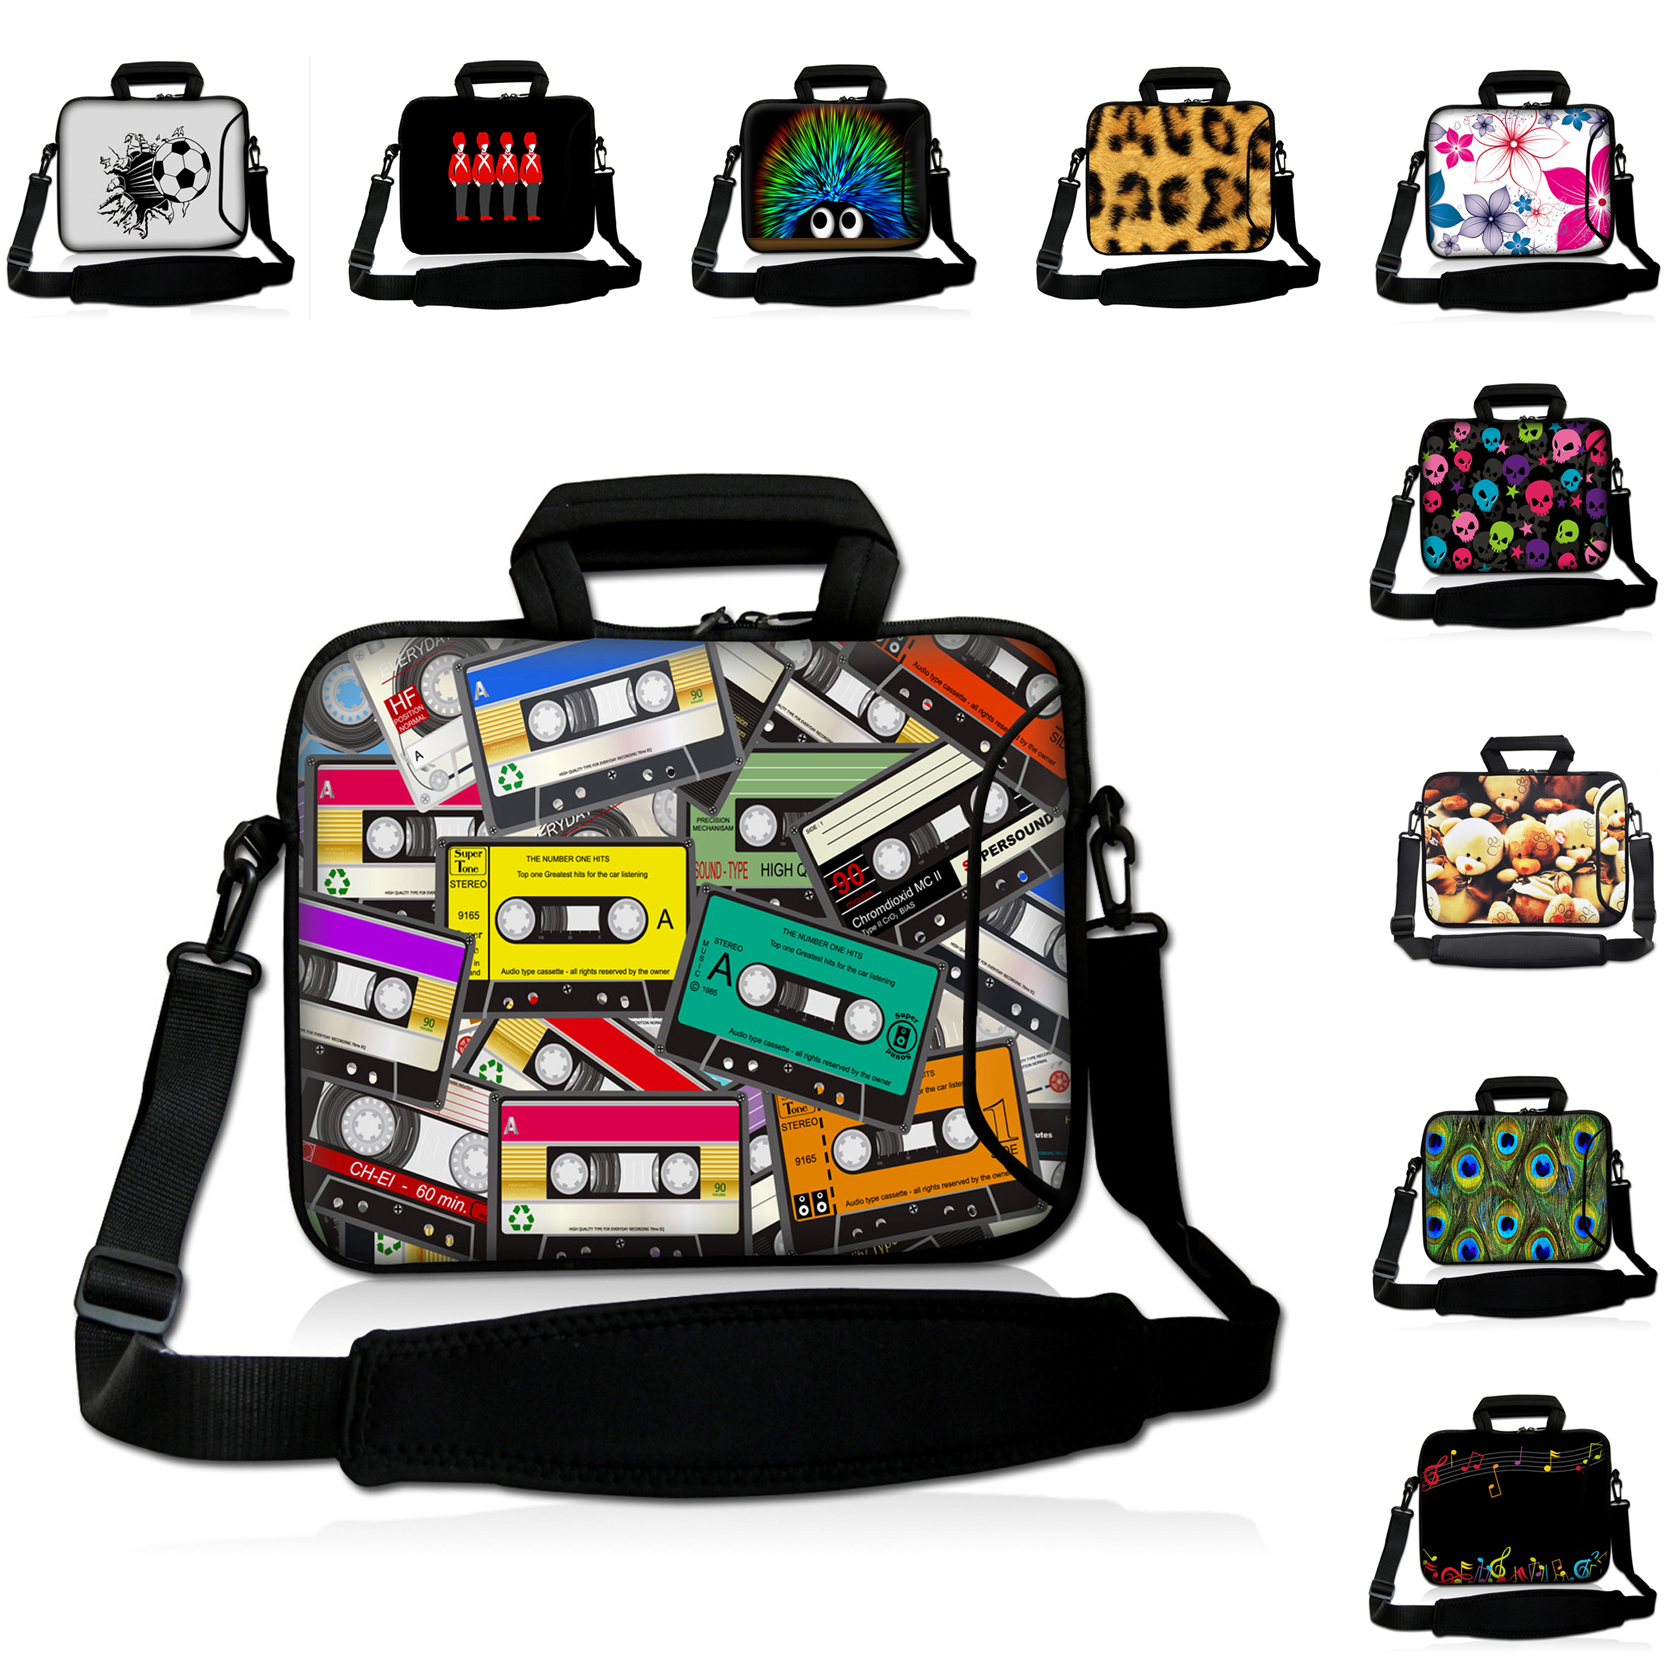 15.6 15.3 15.4 15 inch Shoulder Strap Messenger Laptop Cover Cases For HP Asus Thinkpad Give Your Friend The Best Christmas Gift<br><br>Aliexpress